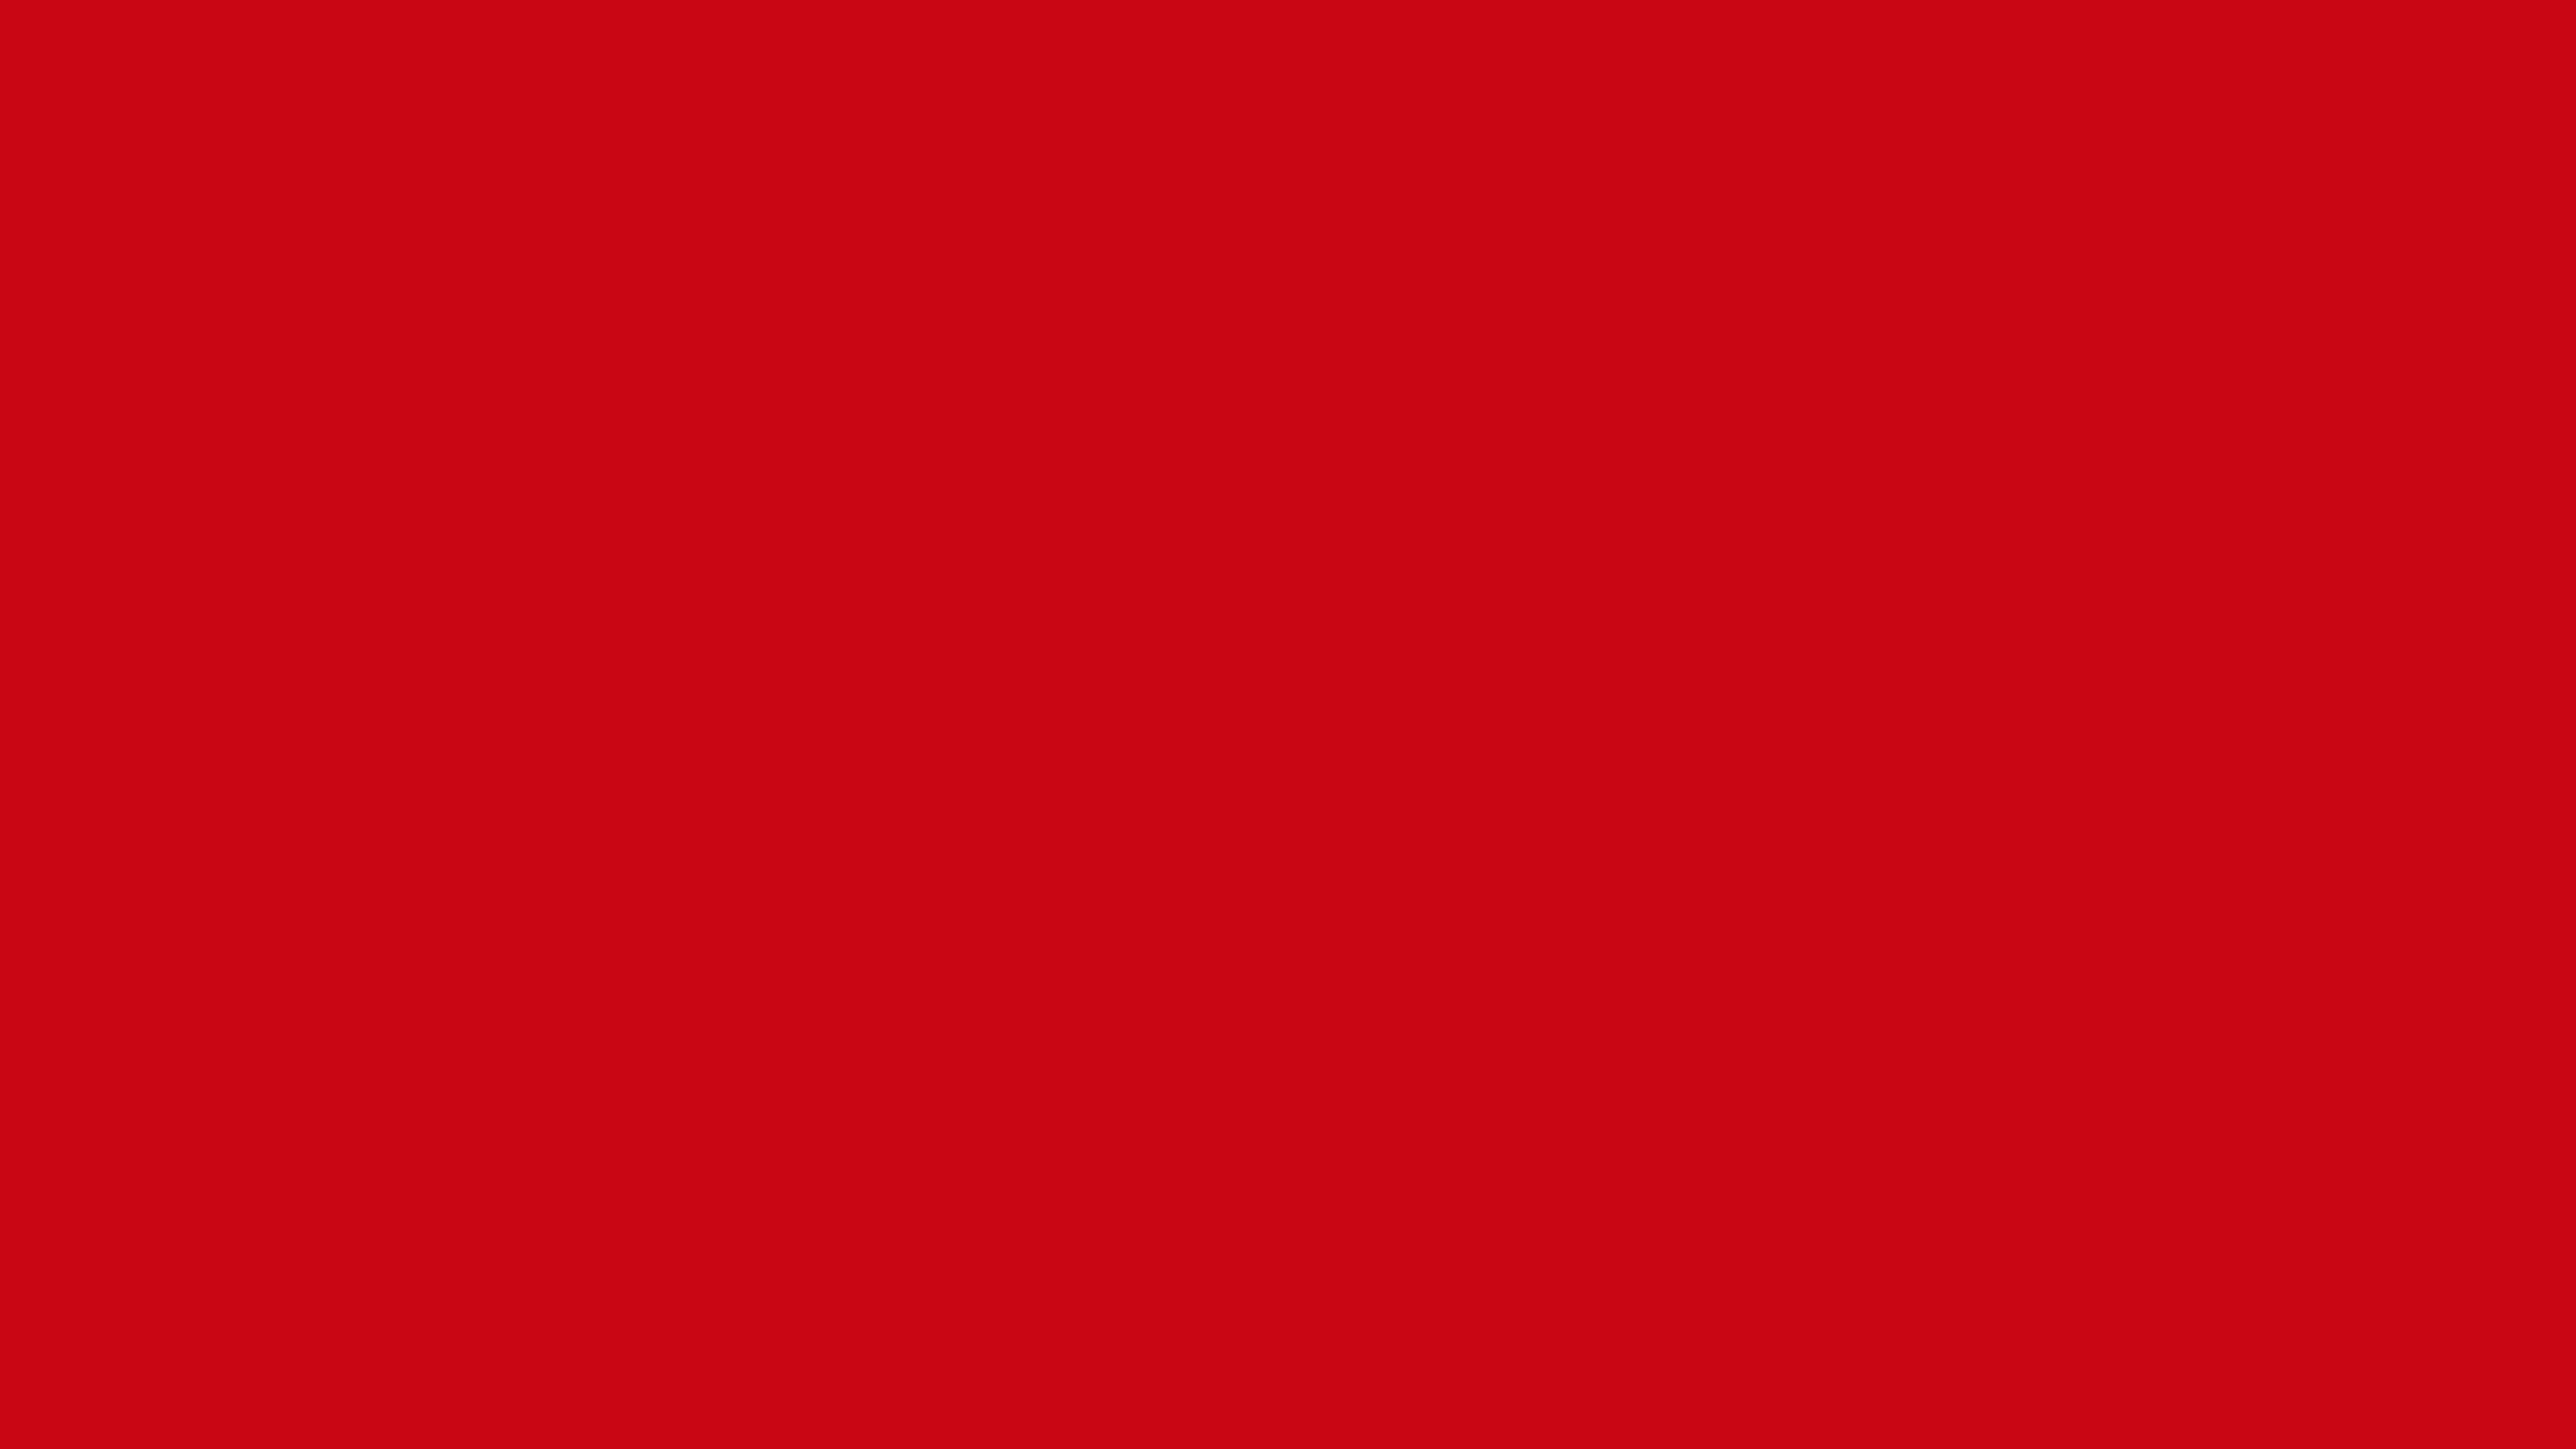 5120x2880 Venetian Red Solid Color Background